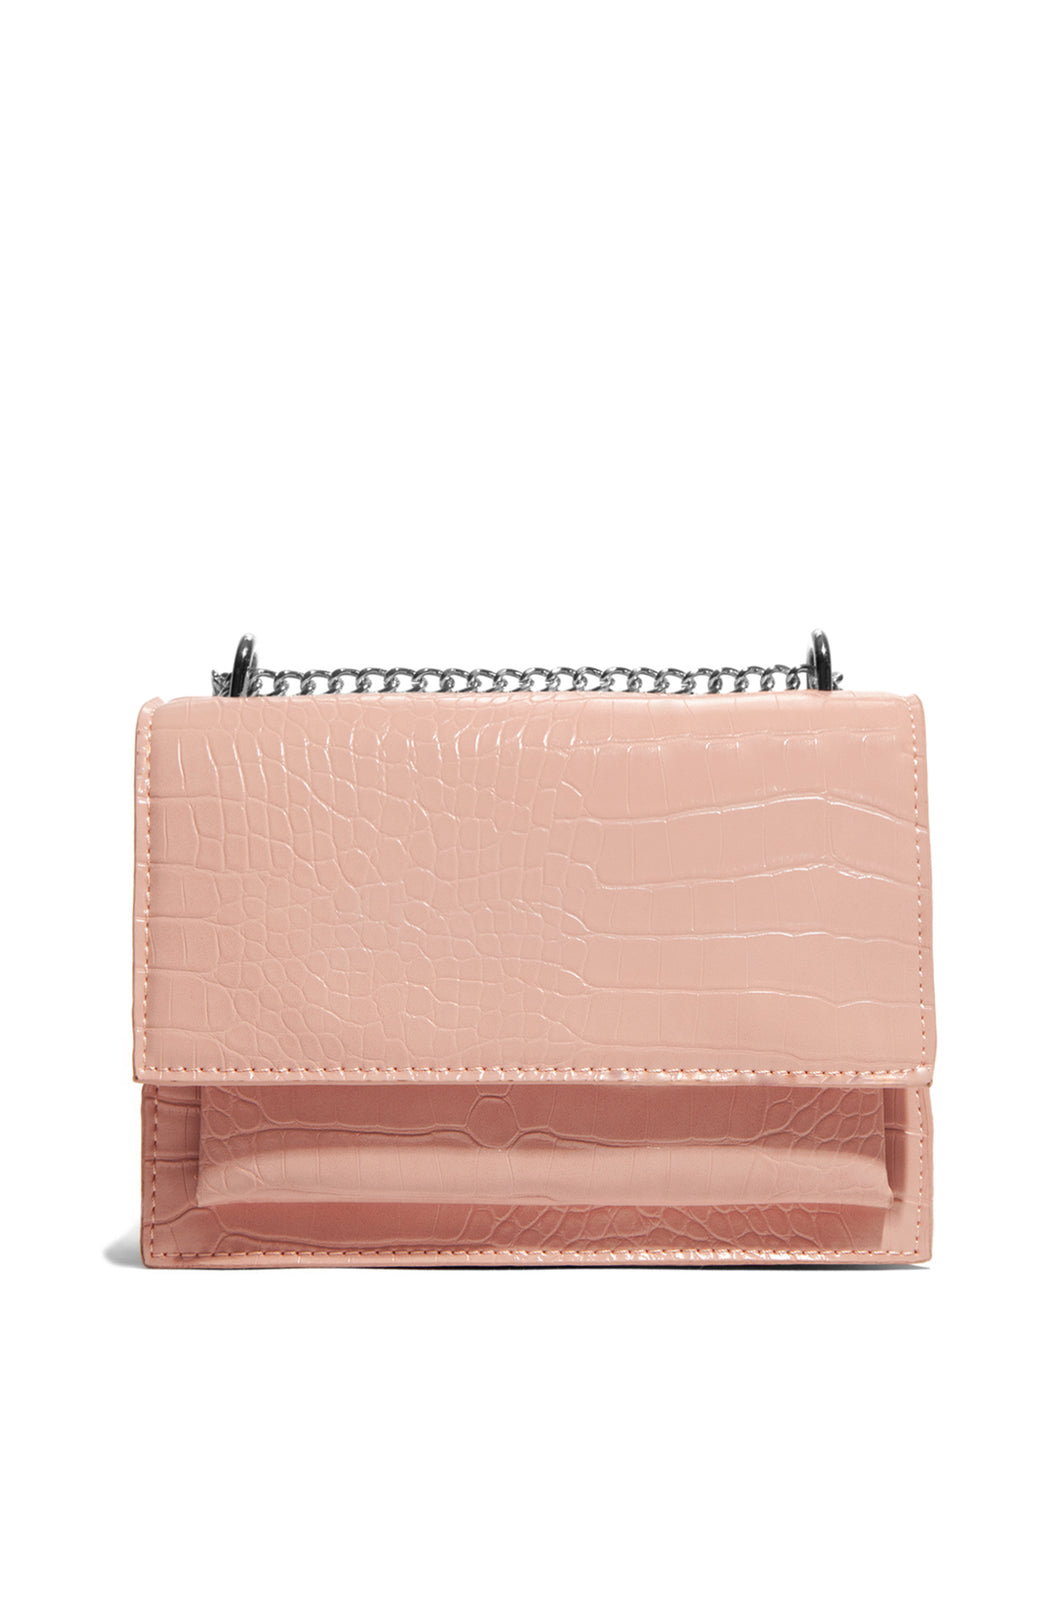 Fashion Icon Bag - Blush